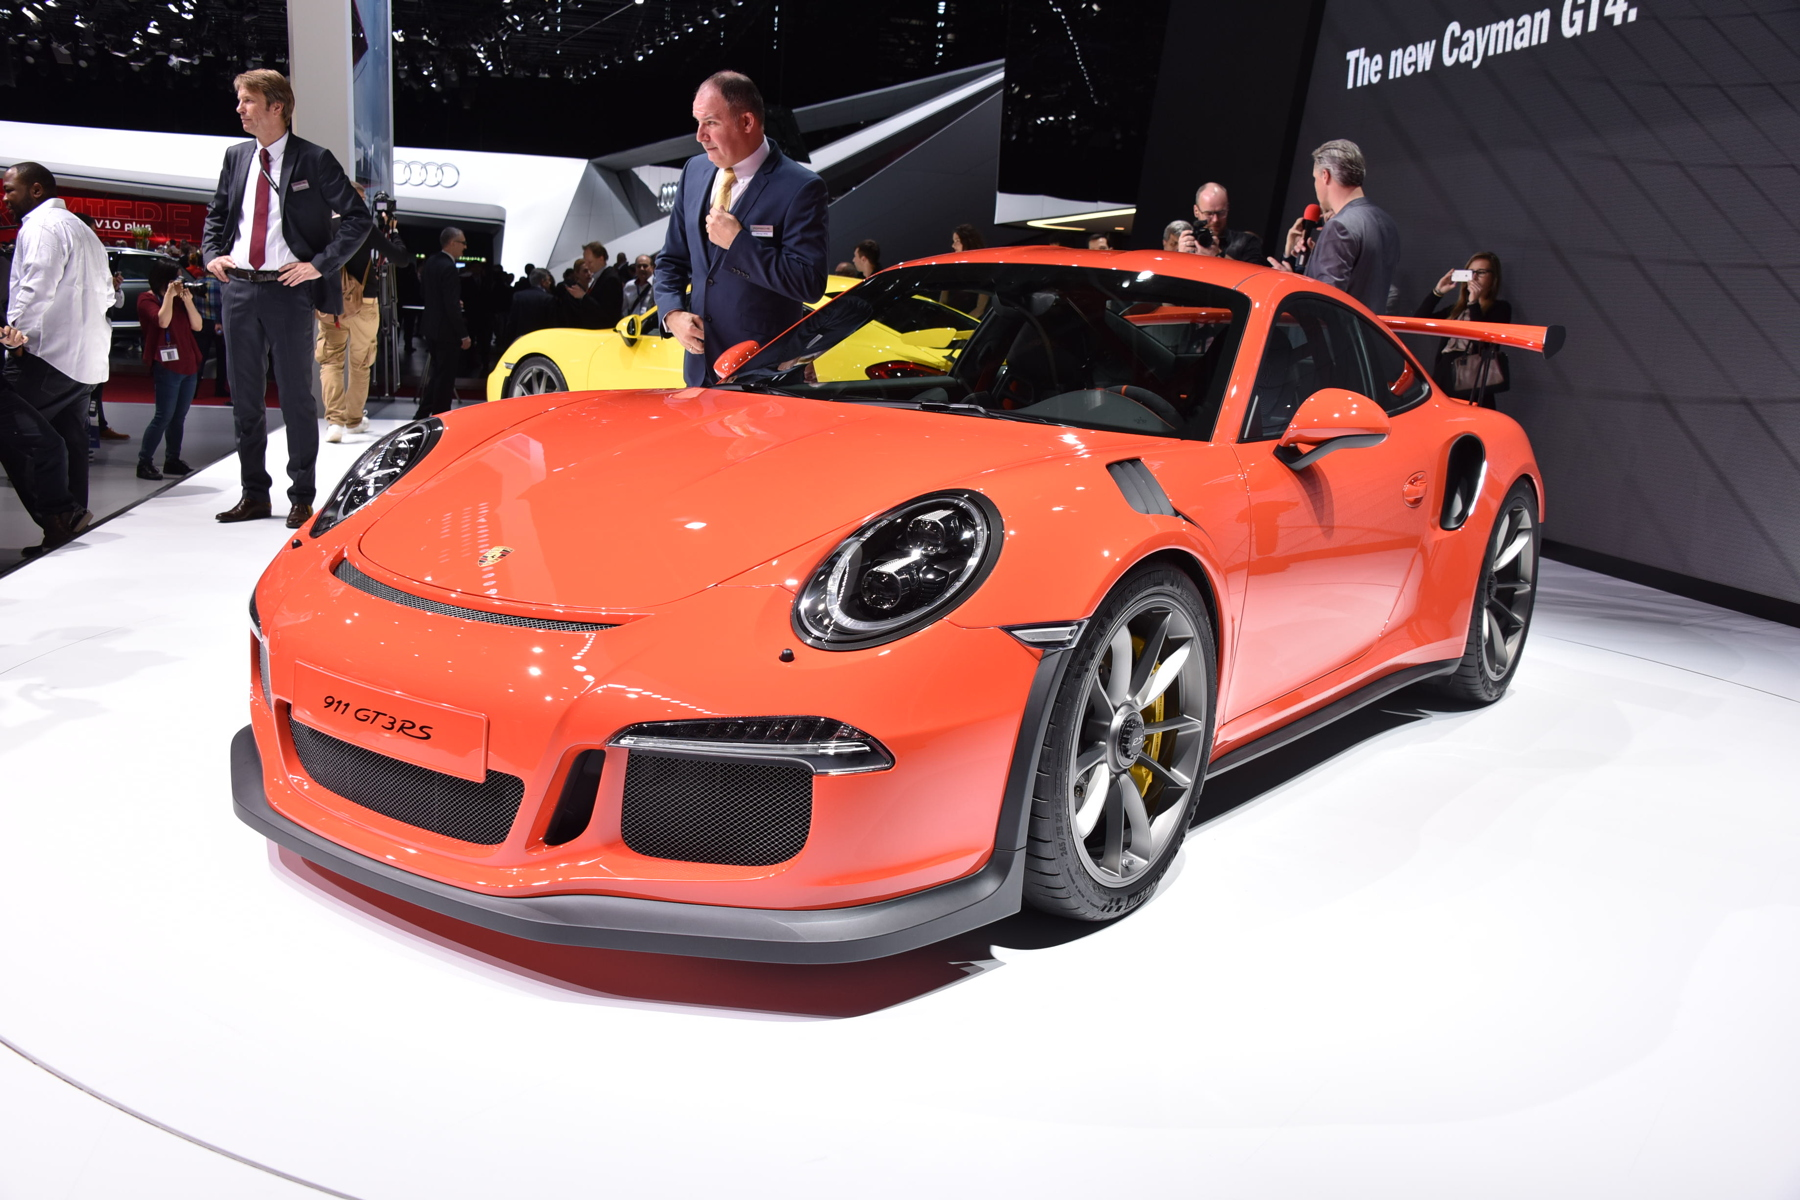 We have everything you need to know about the new Porsche 991 GT3 RS, including photos from Geneva and an interview with Mr. Preuninger himself.